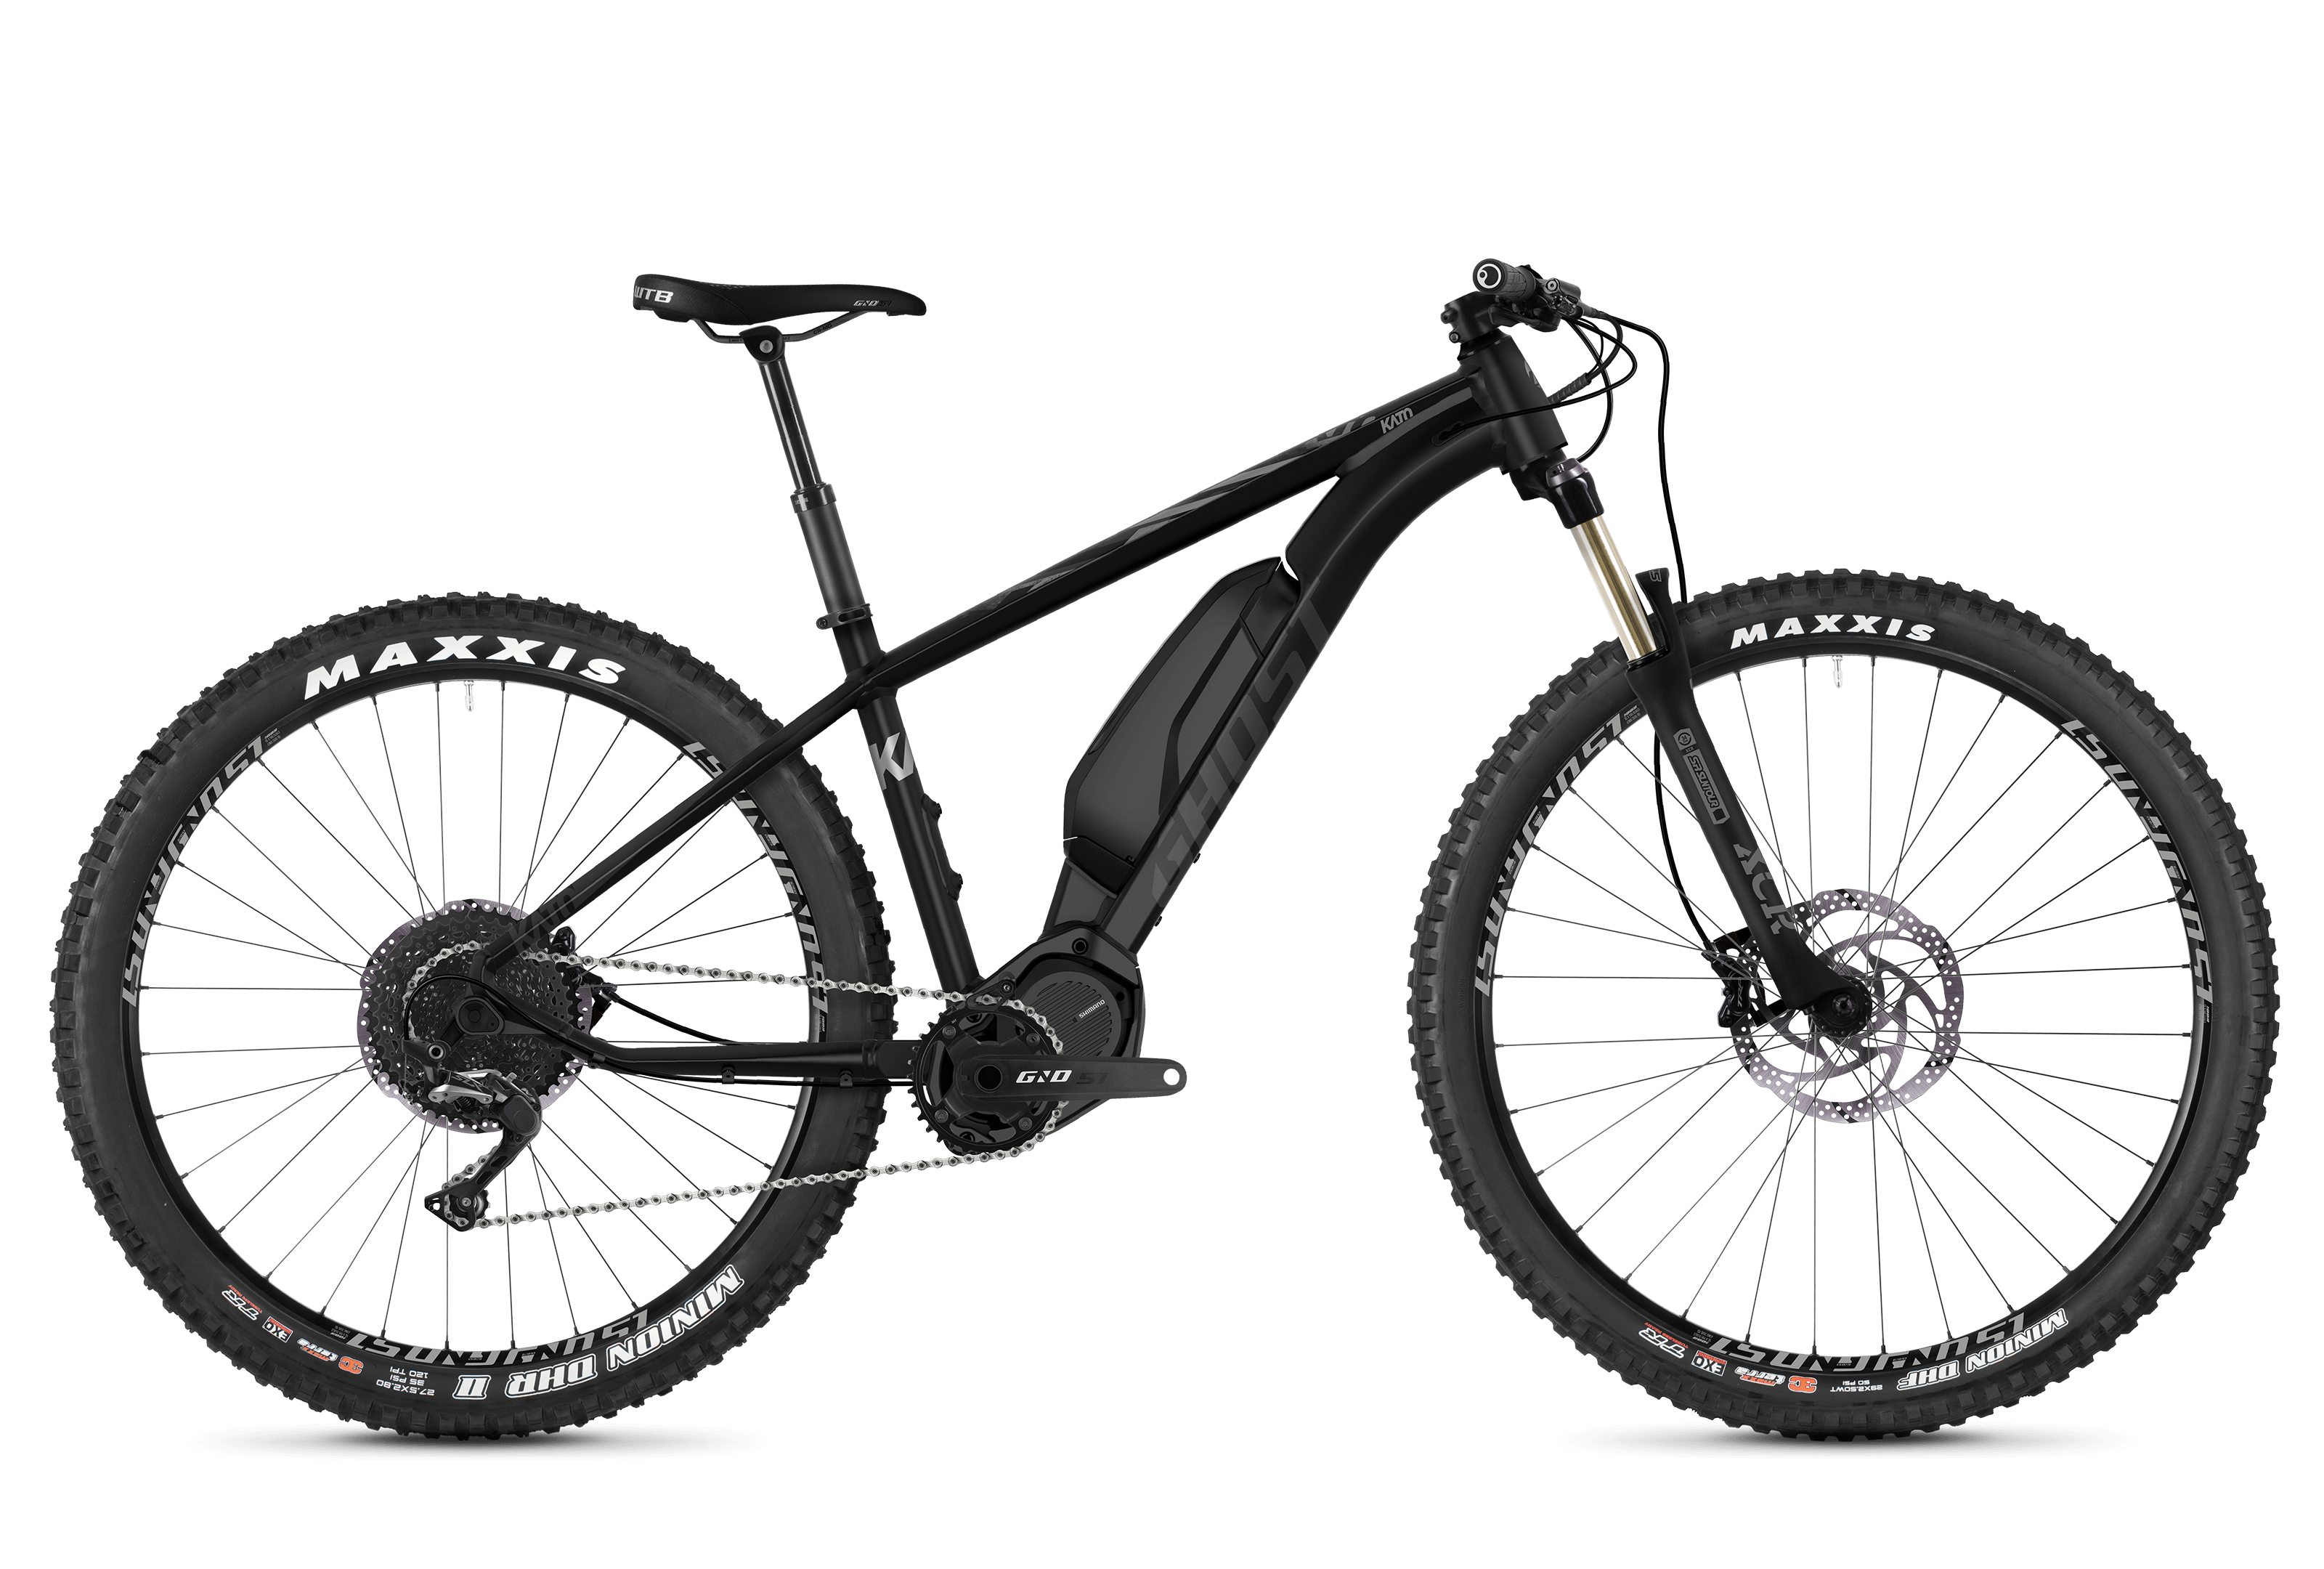 GHOST Ebike Kato X S5.7+ Night Black / Jet Black / Iridium Silver - XL (185-200cm)